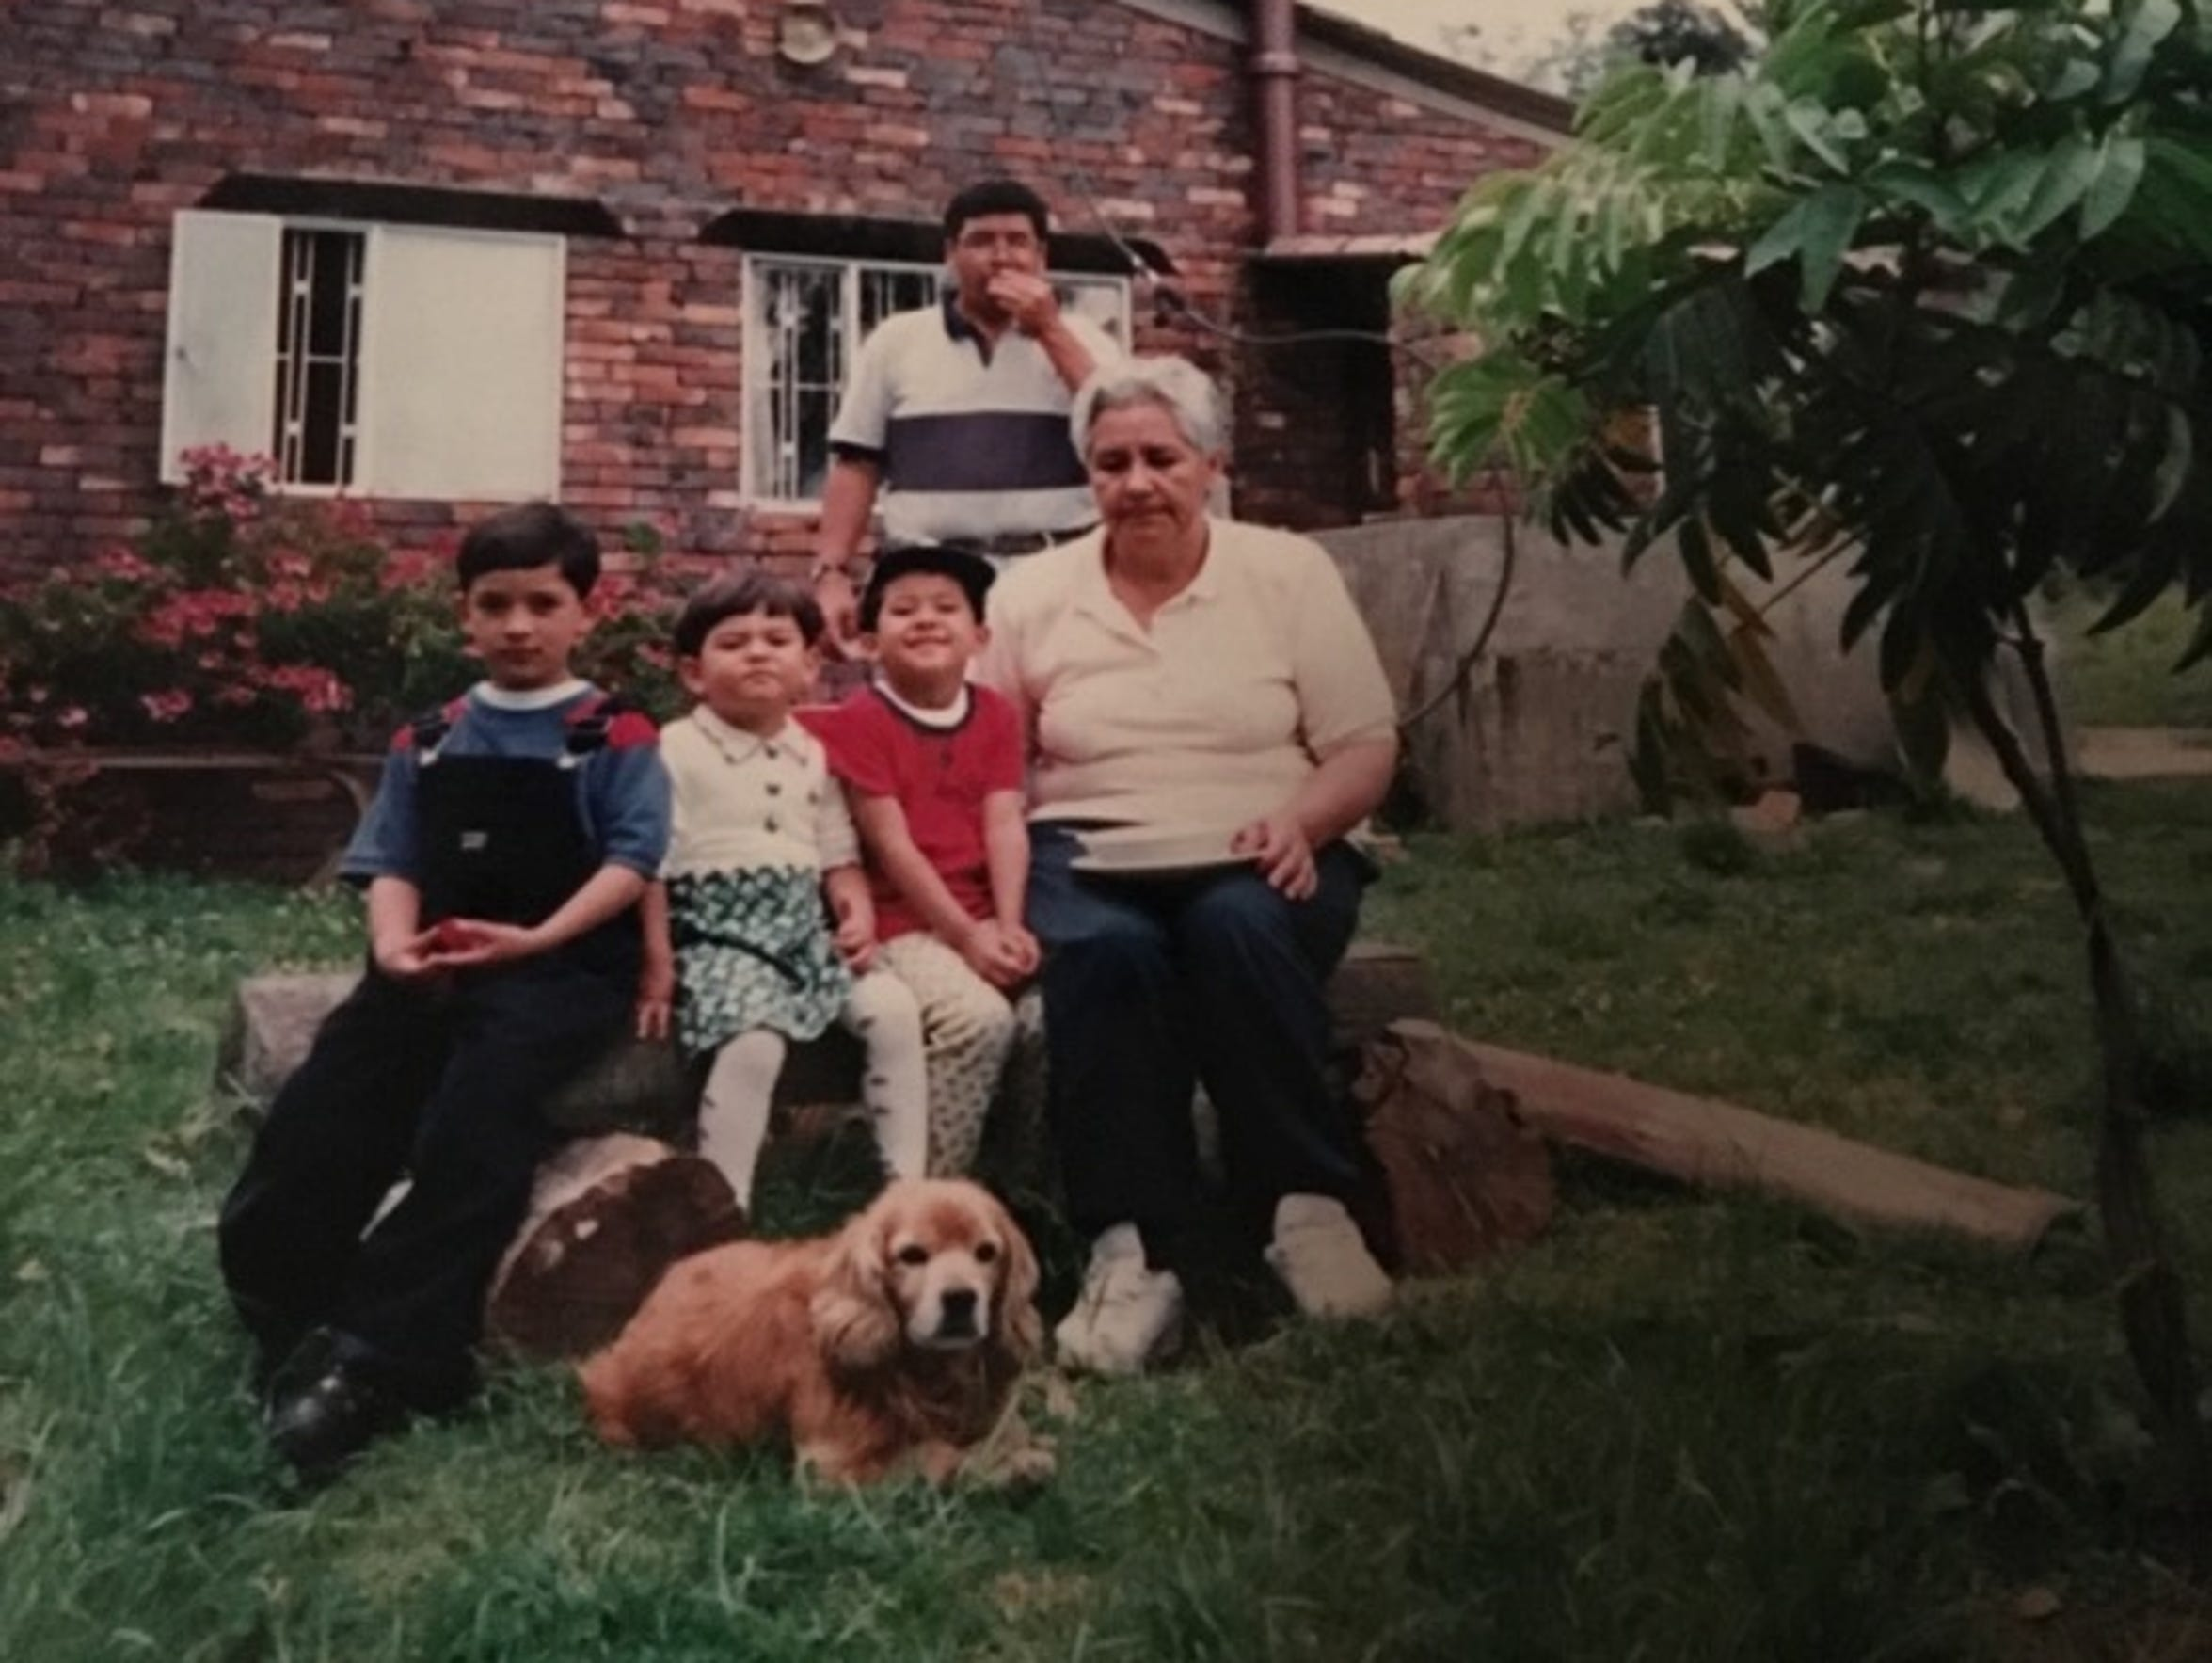 A cousin, Maria Juliana, Juan Rodriguez, their grandmother